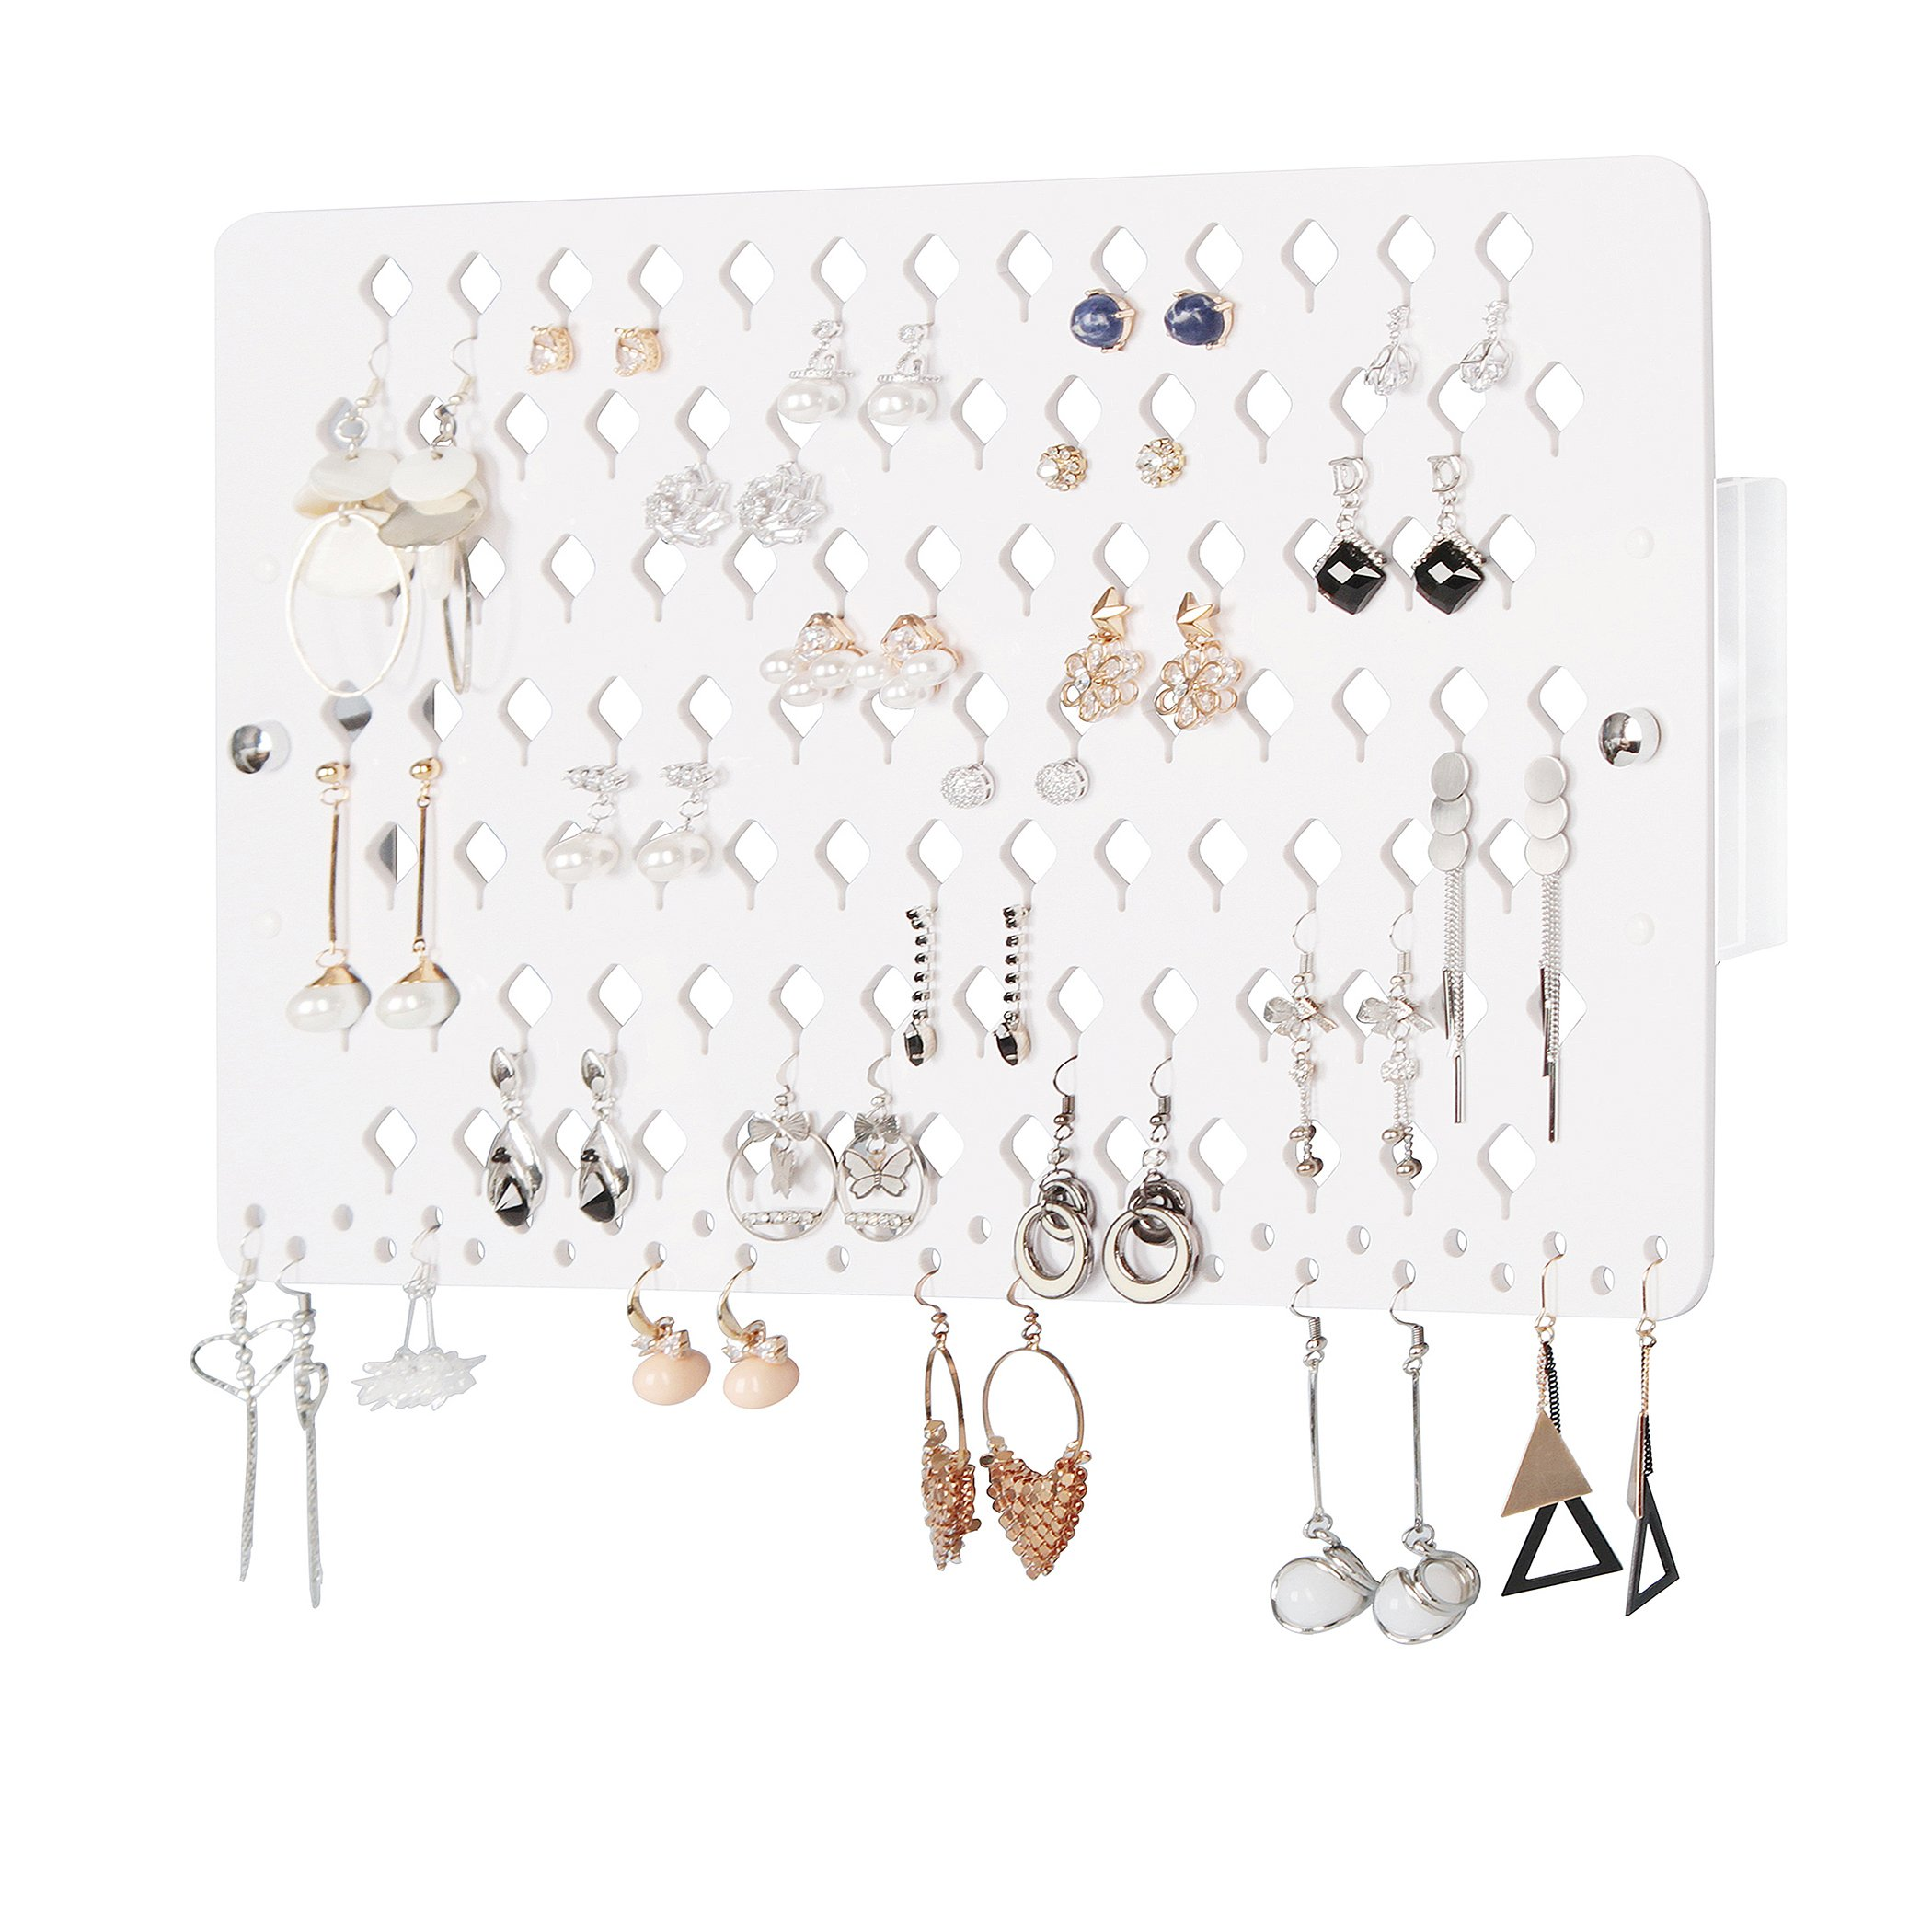 JackCubeDesign Wall Mount Earring Jewelry Holder Organizer Hanger Storage Rack Display Clear Acrylic with 94 Holes(White,15.7 x 9.4 x 0.9 inches) - :MK201A